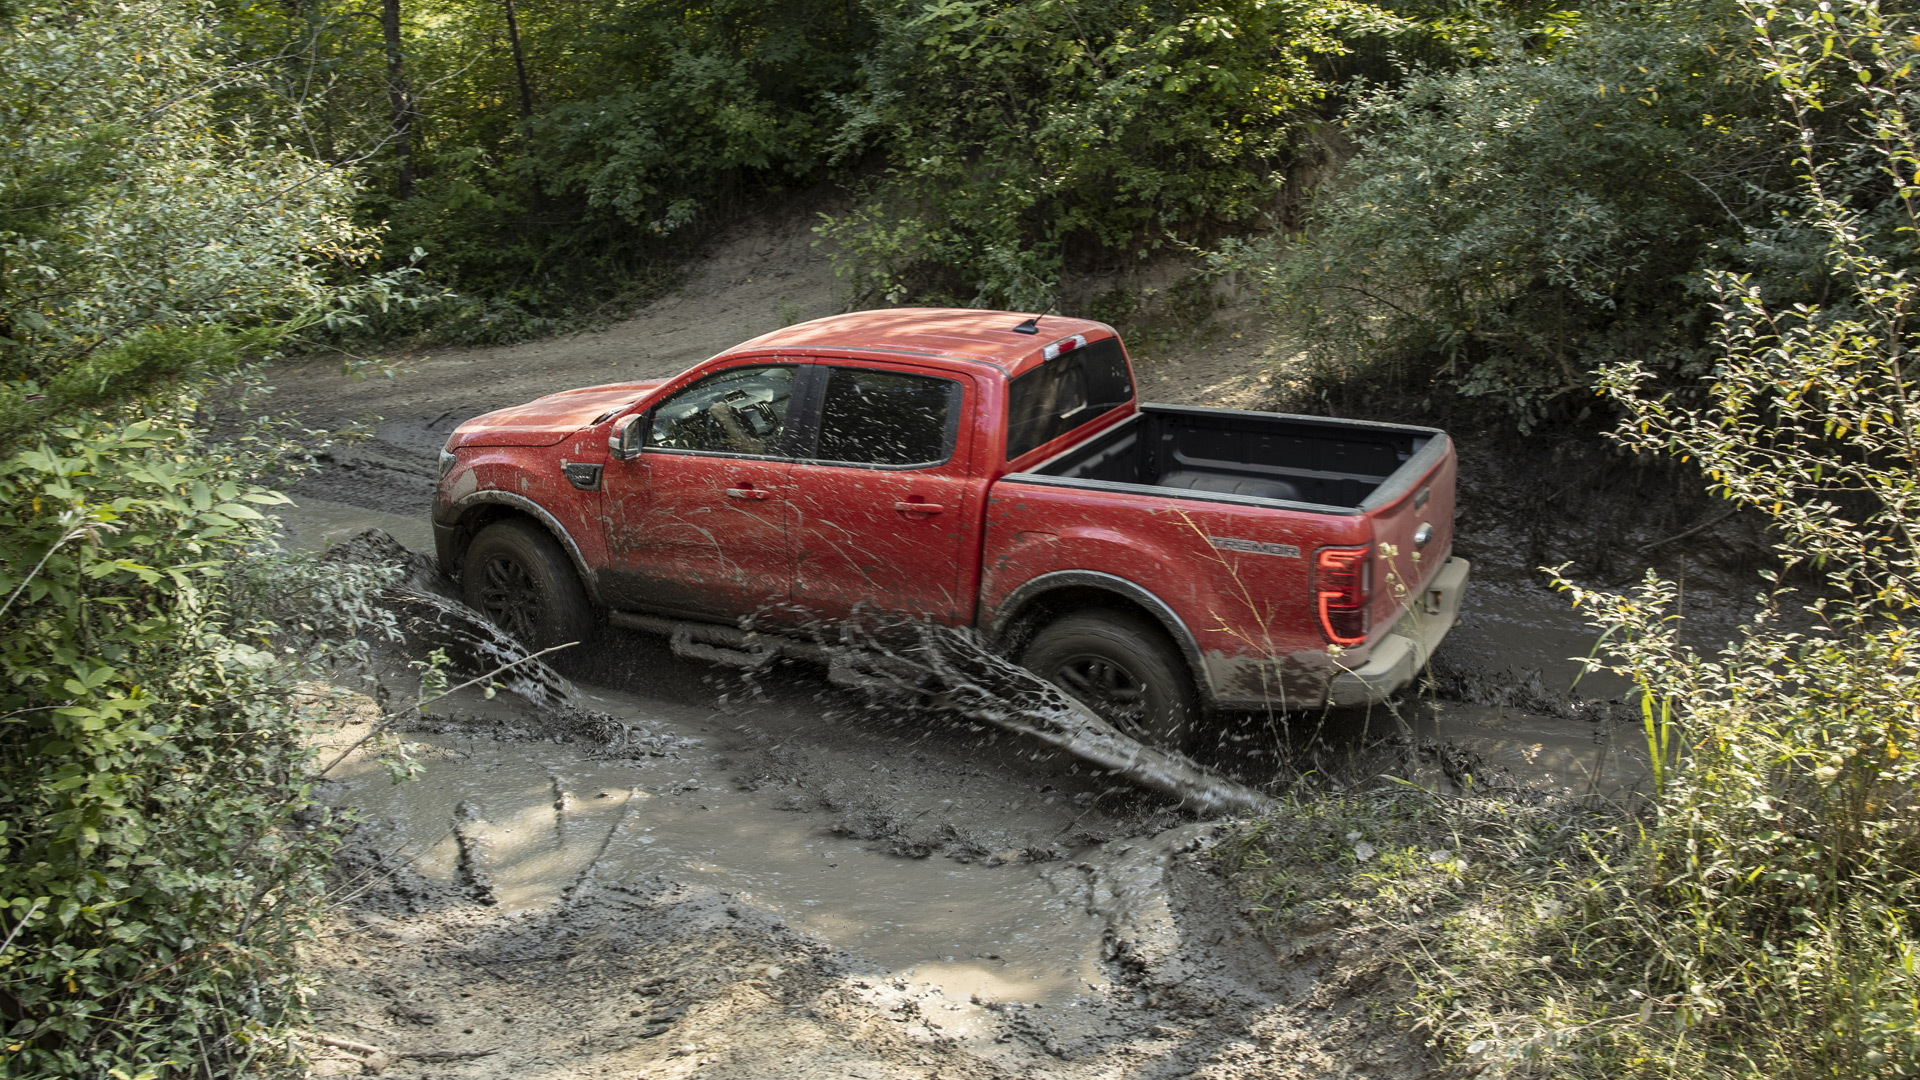 2021 Ford Ranger equipped with Tremor Off-Road Package